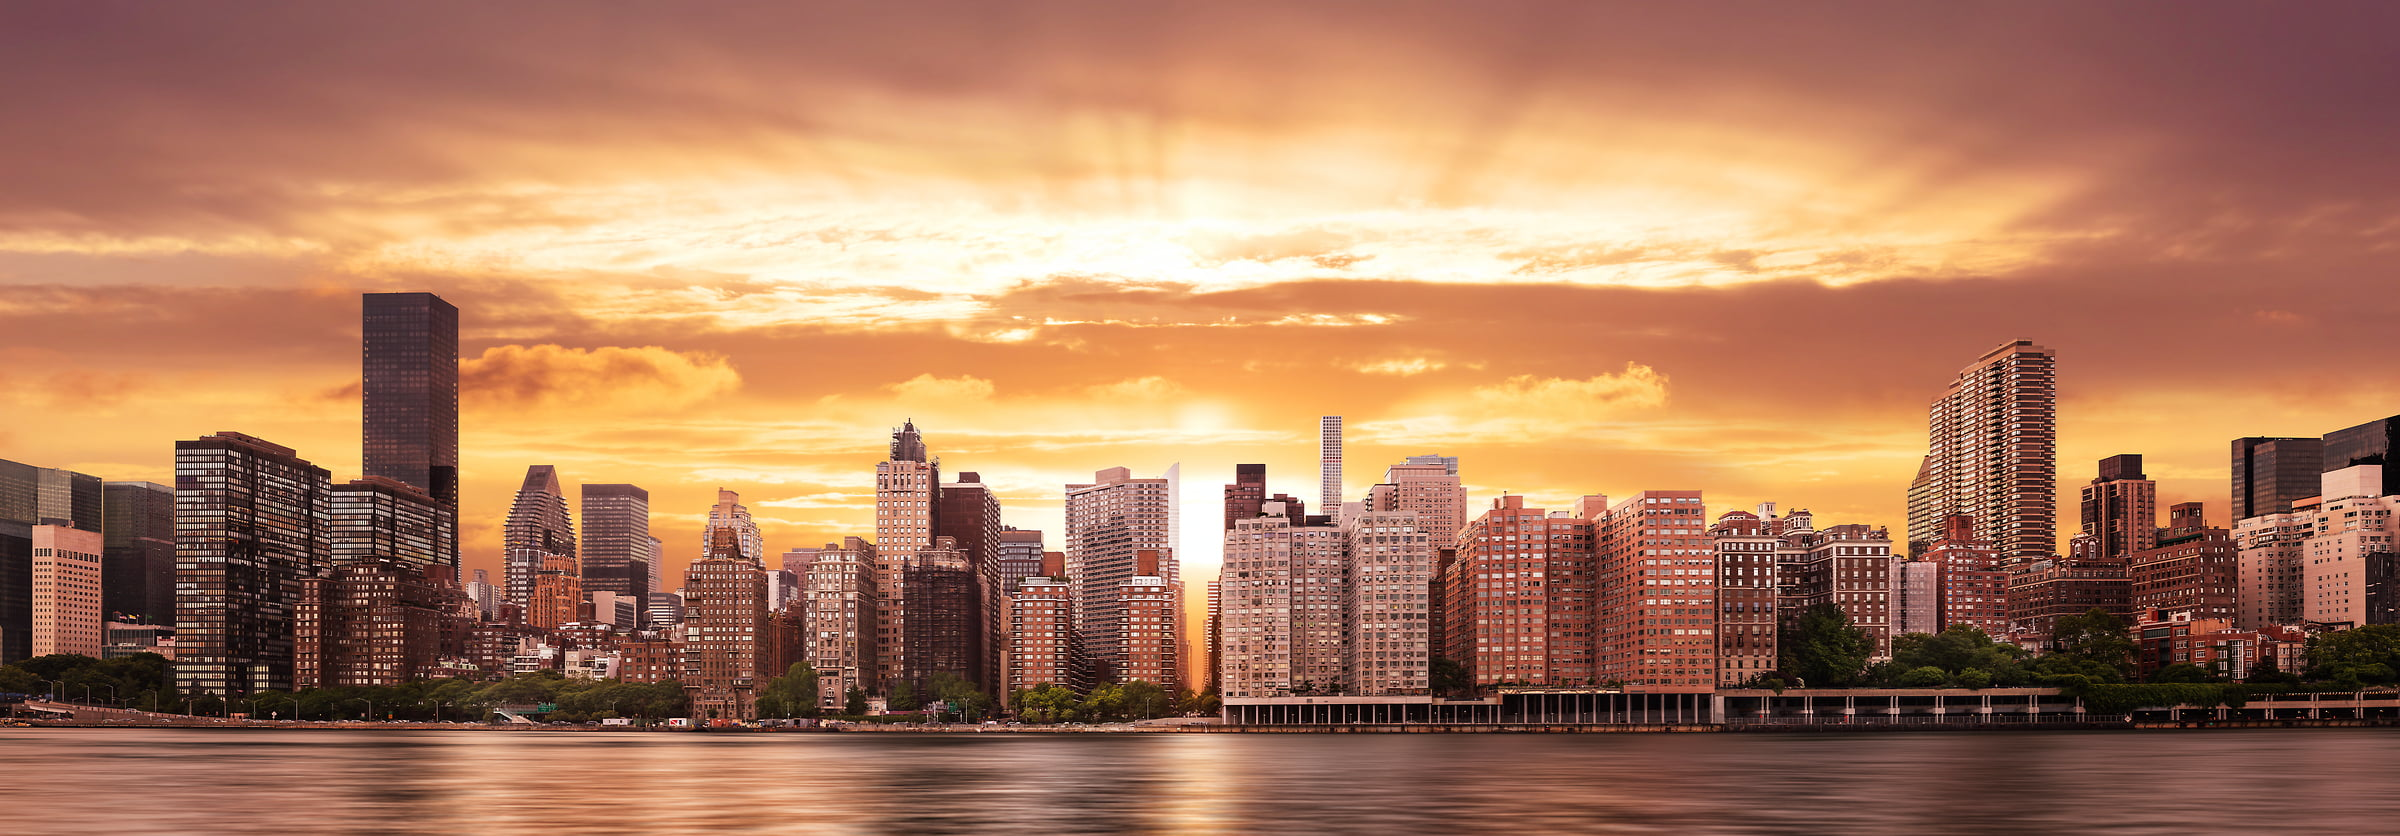 Bild New York Skyline New York Skyline Sunset Photos Large Format Fine Art